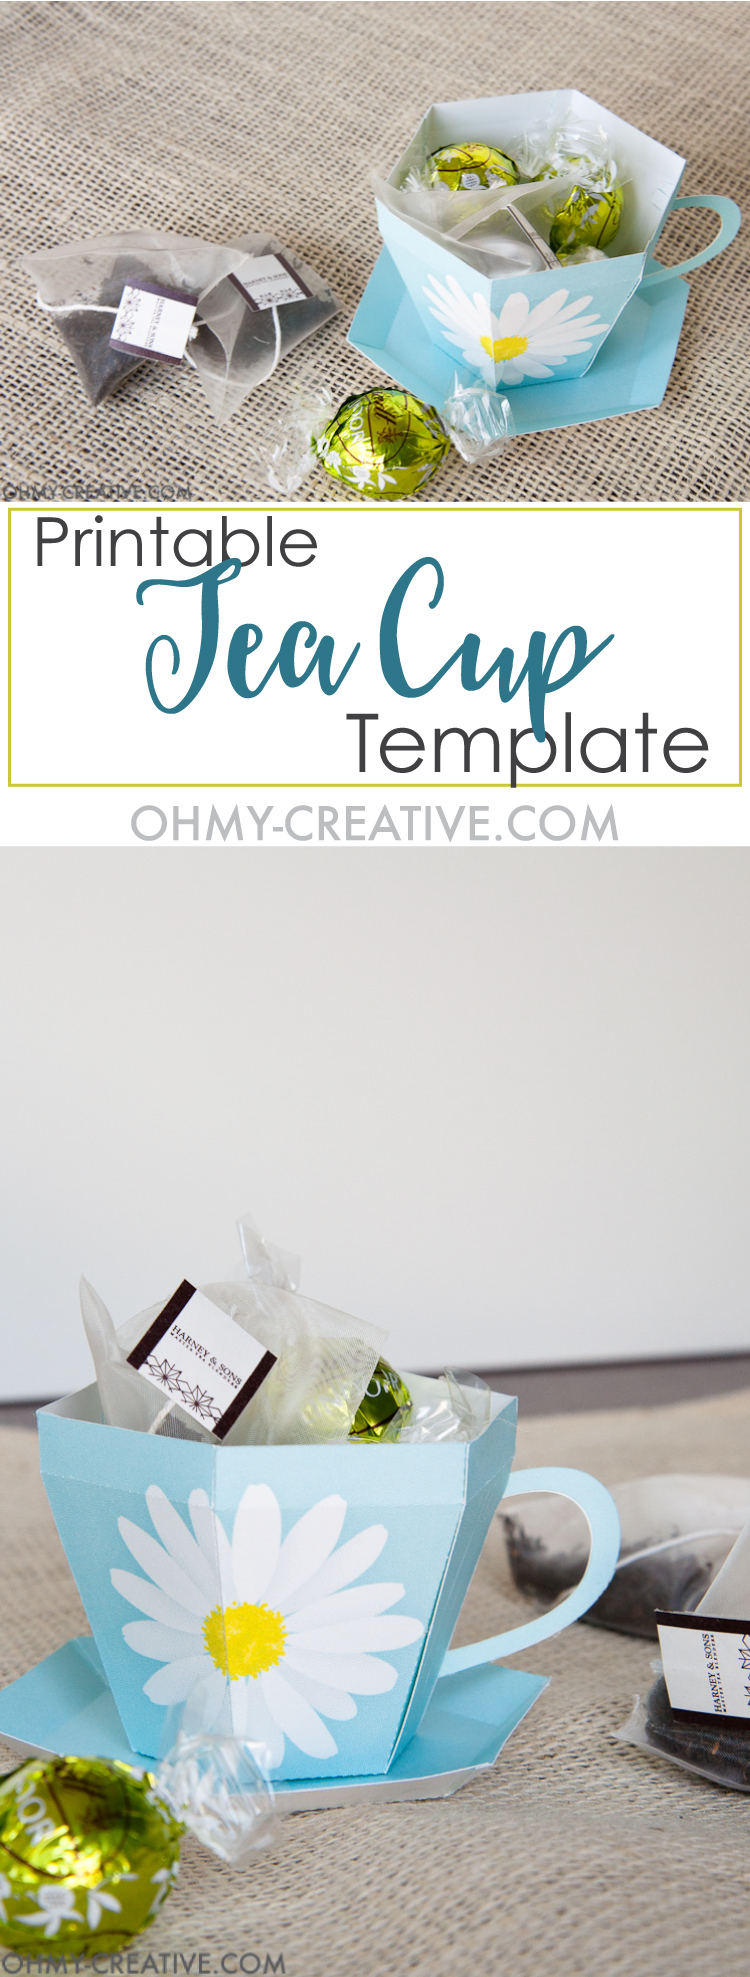 tea cup template printable tea cup gift oh my creative